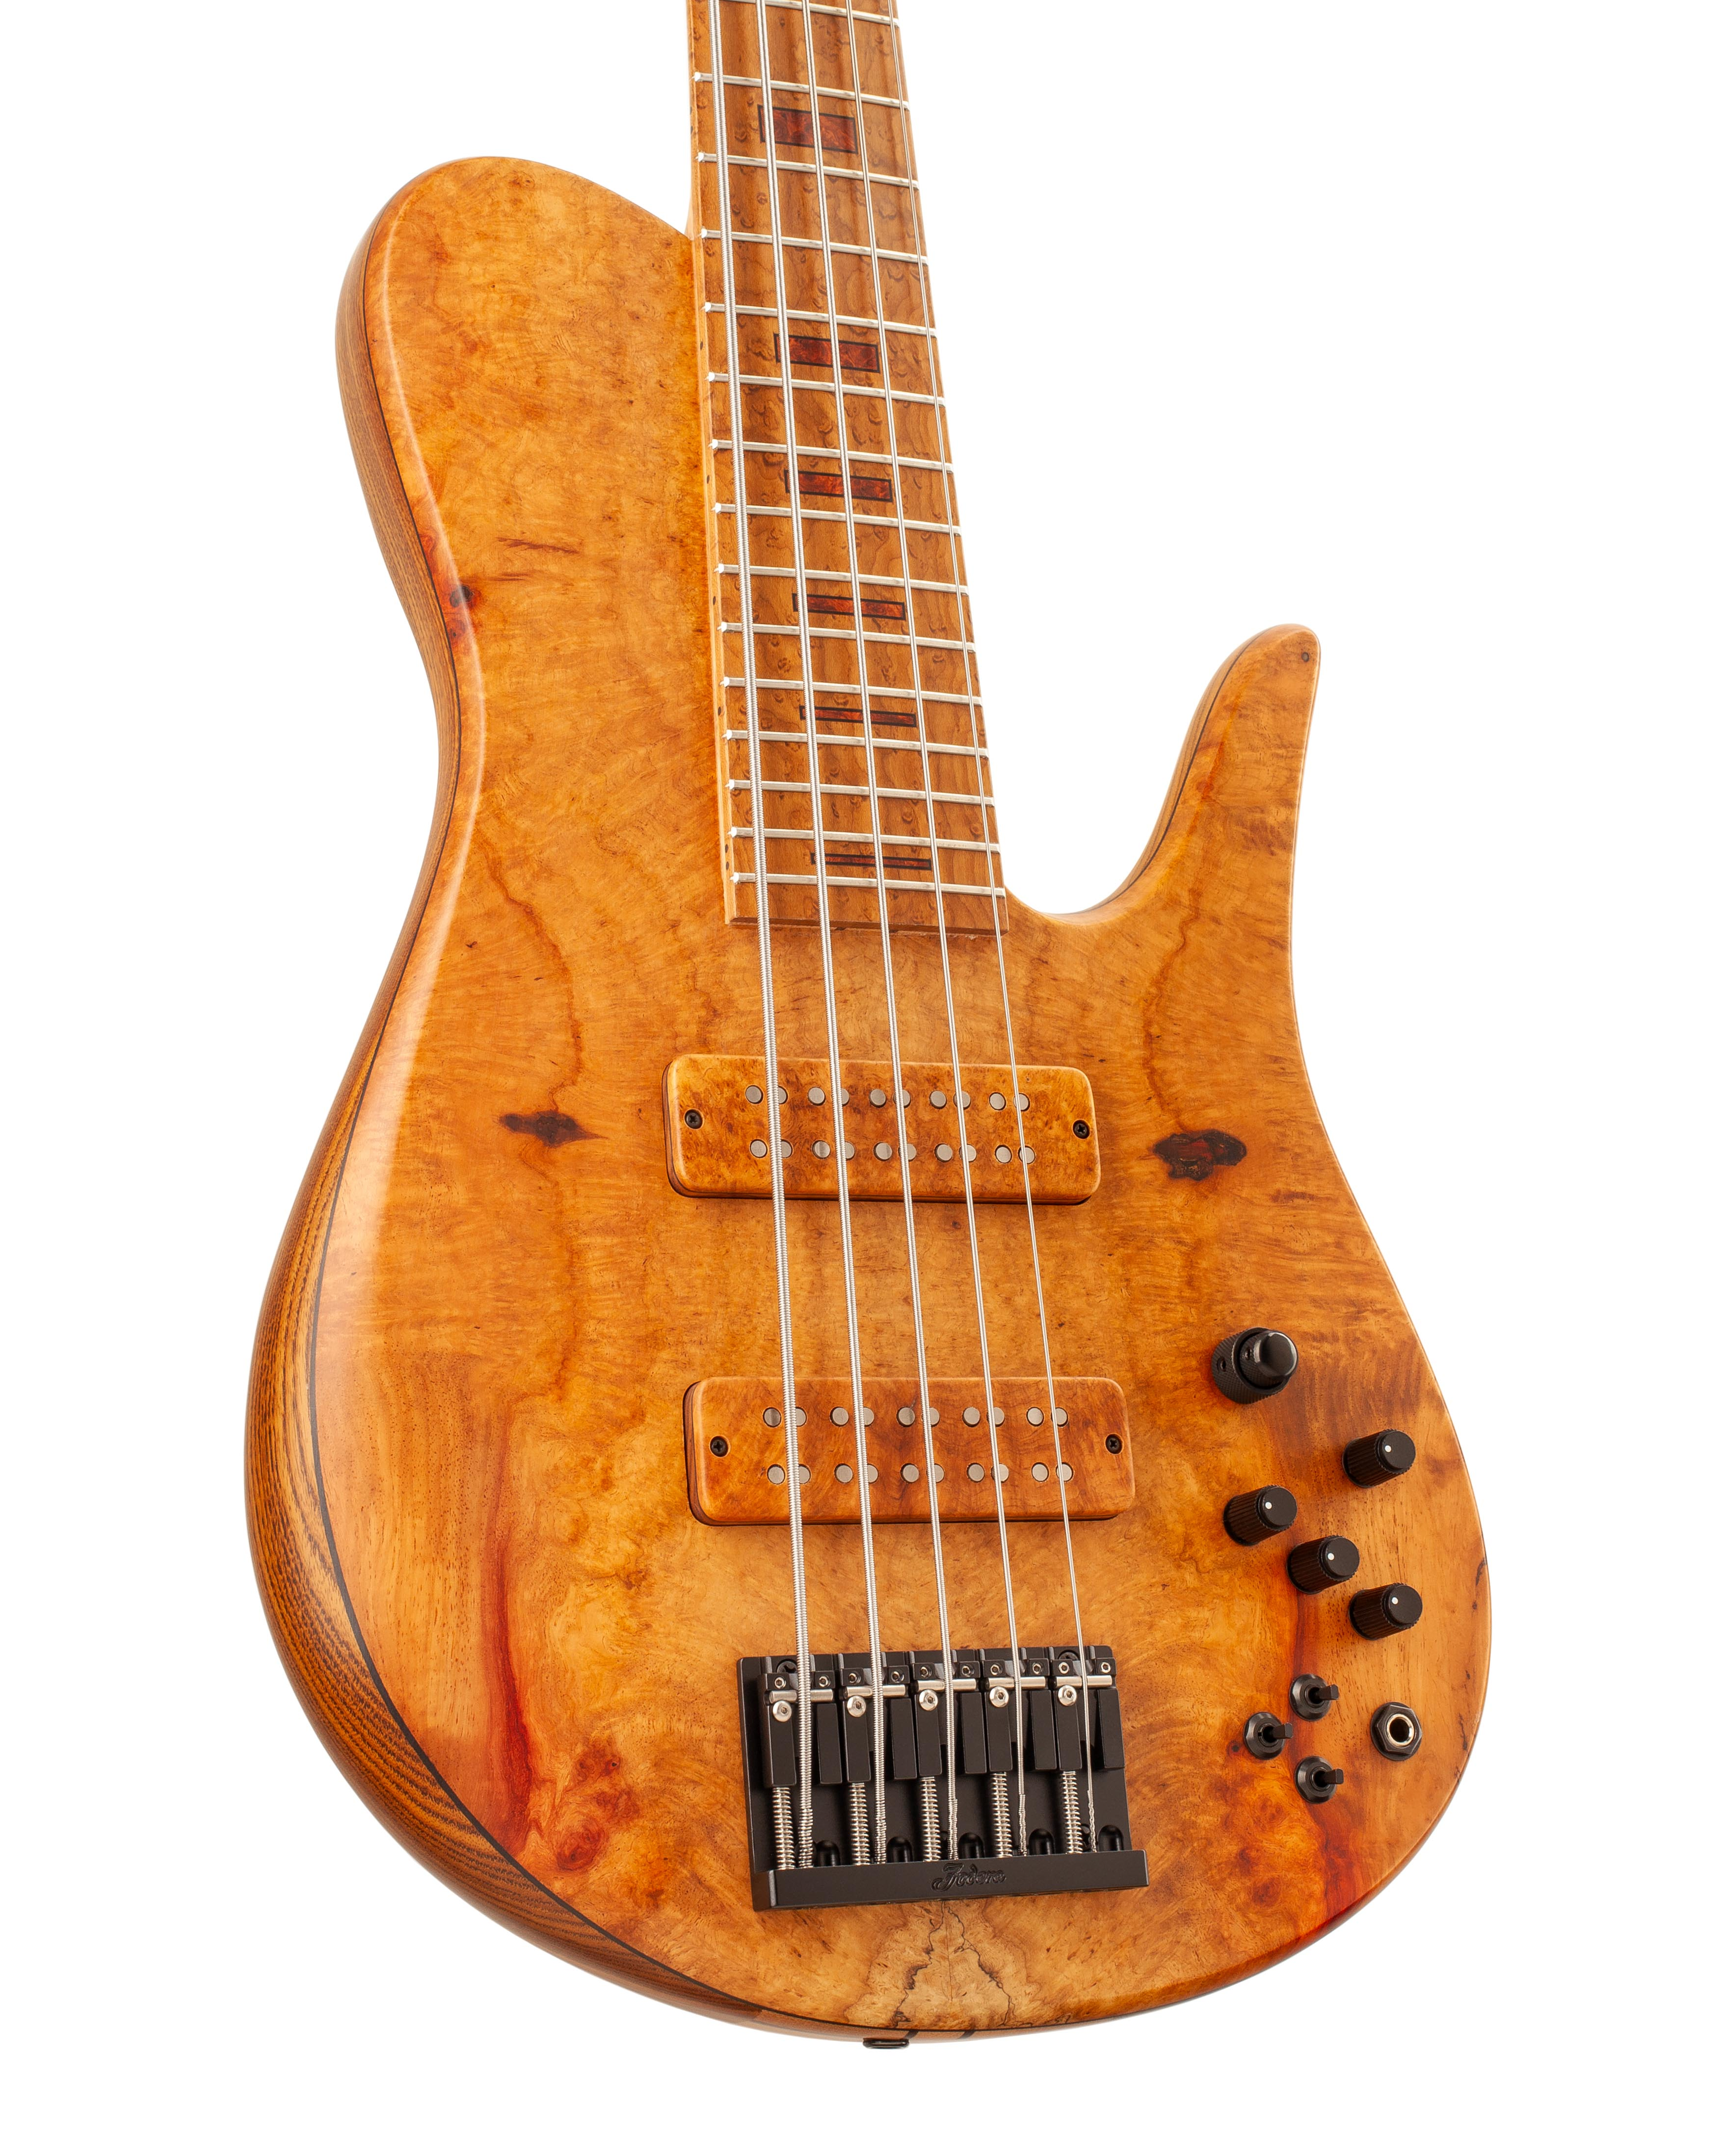 Five-String Bass With Warm Colored Topwood Front Body